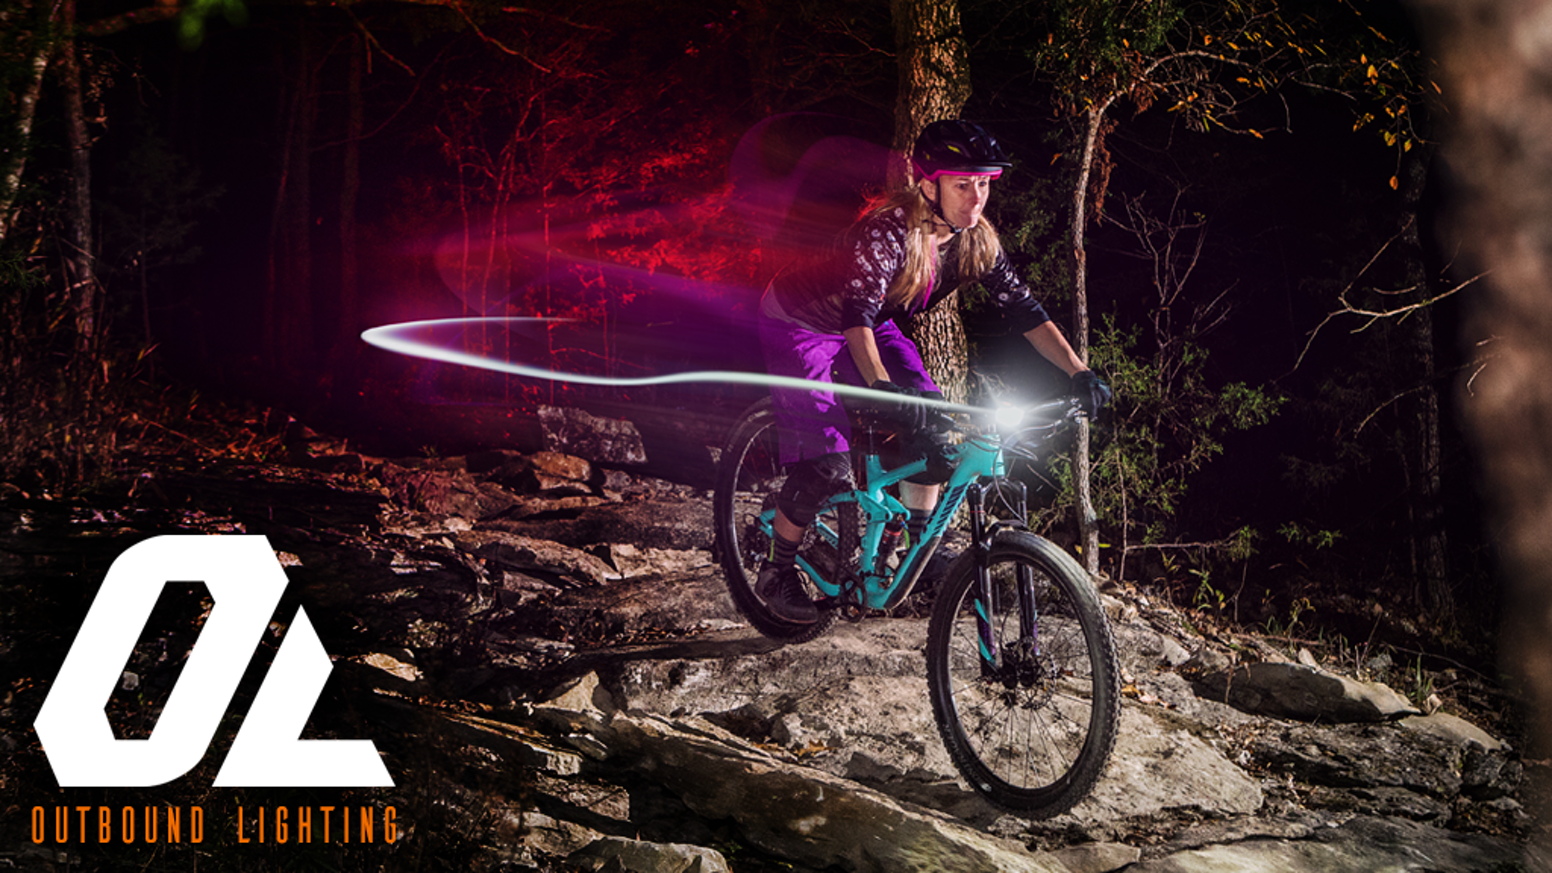 Using the same LED reflector technology found in high-end automotive headlights to bring high performance lighting to bicycles! Did you miss our kickstarter? No worries! You can get yours now by clicking the Order Now button below!